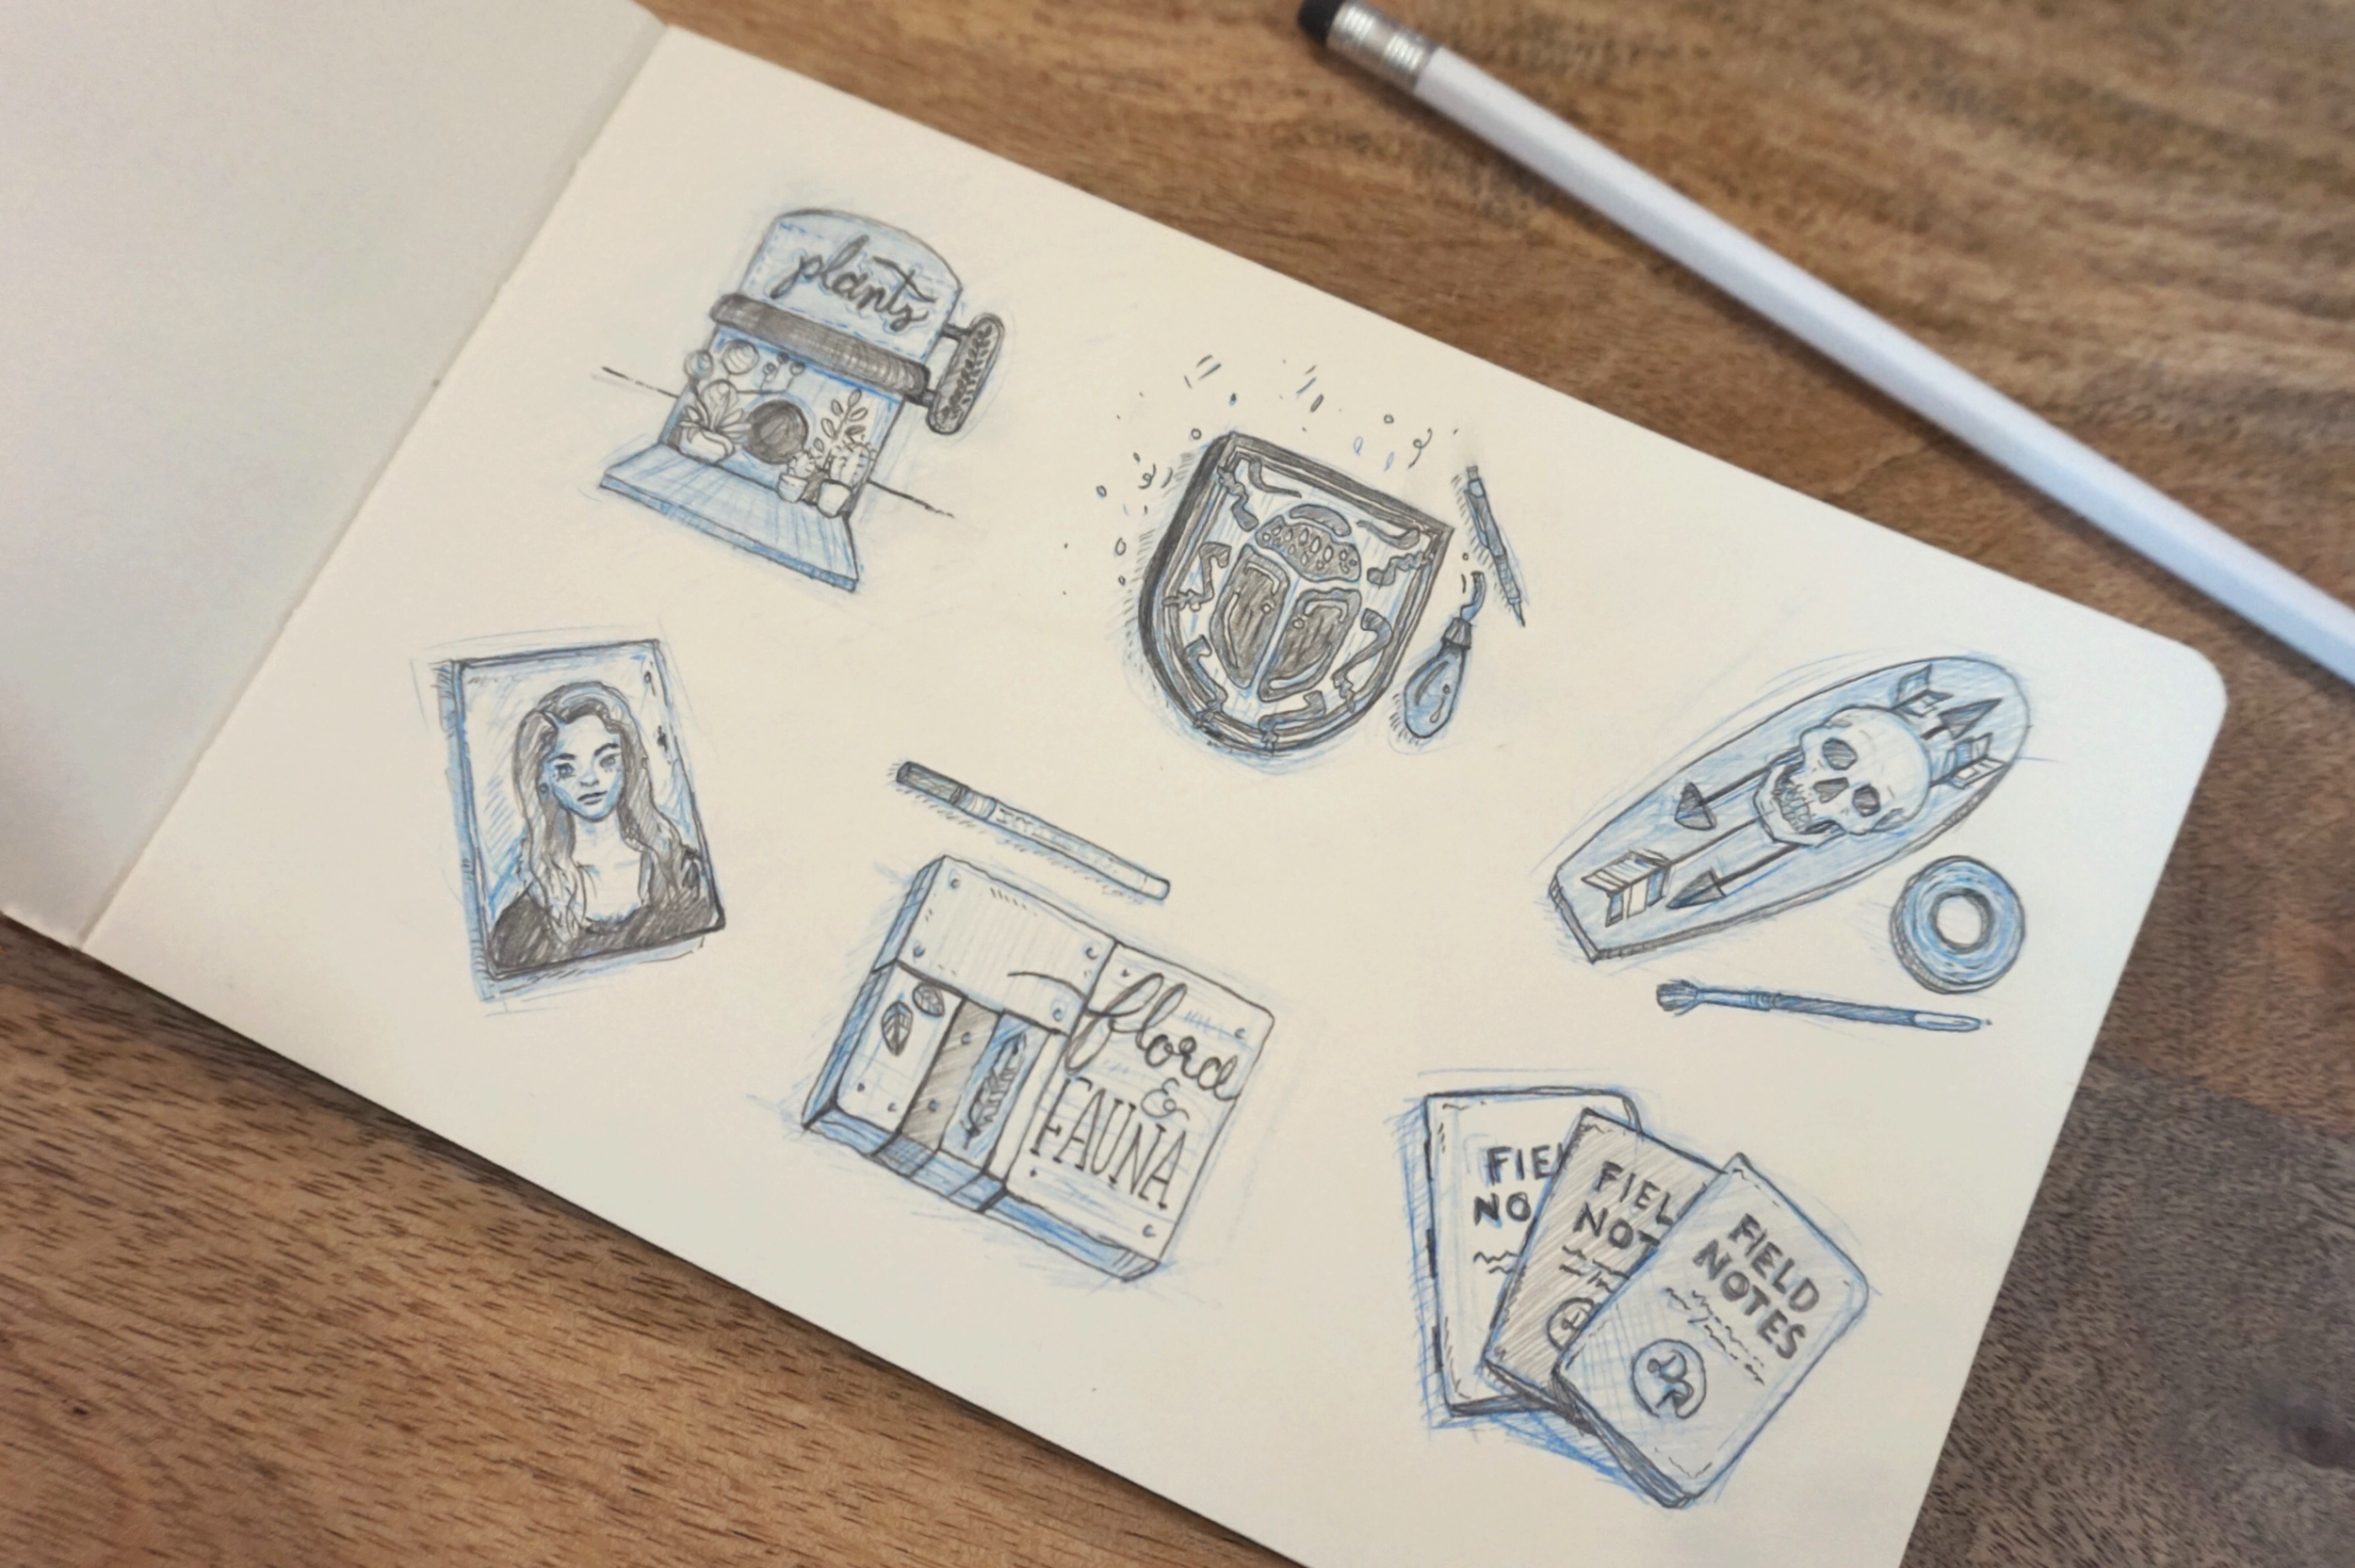 Little sketches of each project I completed (or almost completed) while at Design Ranch